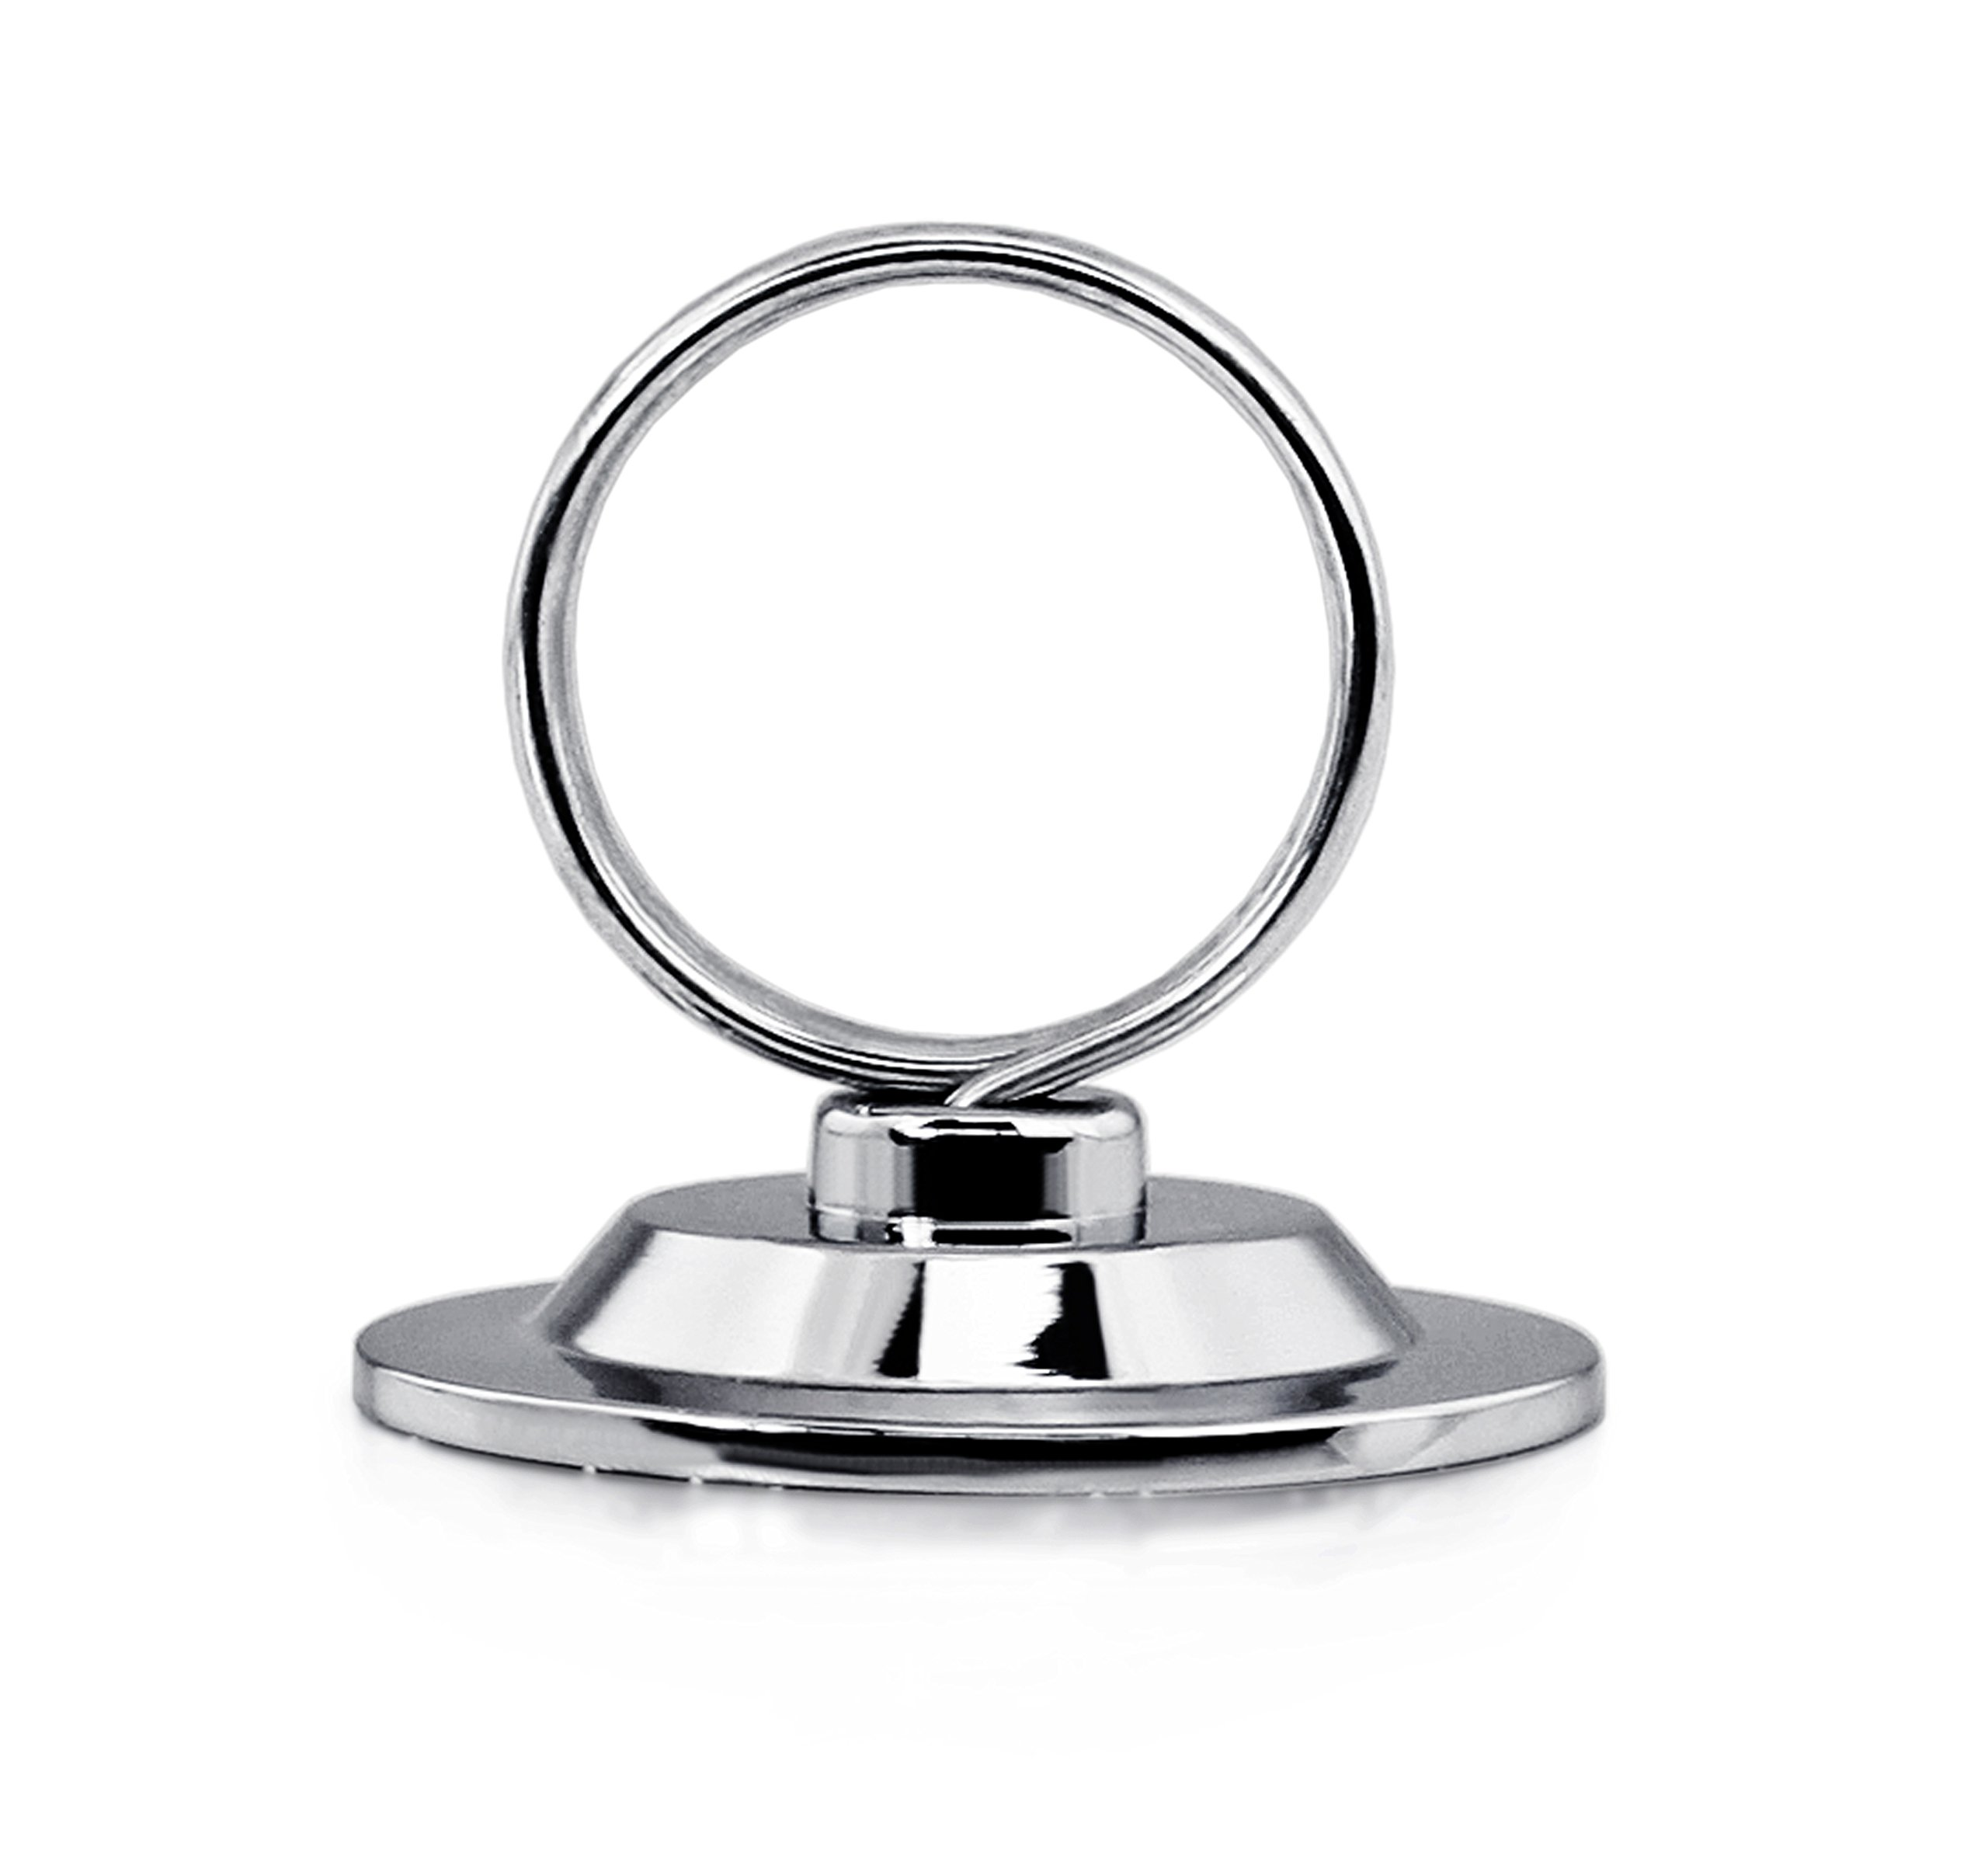 New Star 12 pcs Ring-Clip Place Card Holder Table Menu Holder Table Card Holder Table Number Holder Table Number Stand Banquet Table Place Card Holder Heavy Base New Star Foodservice 23398